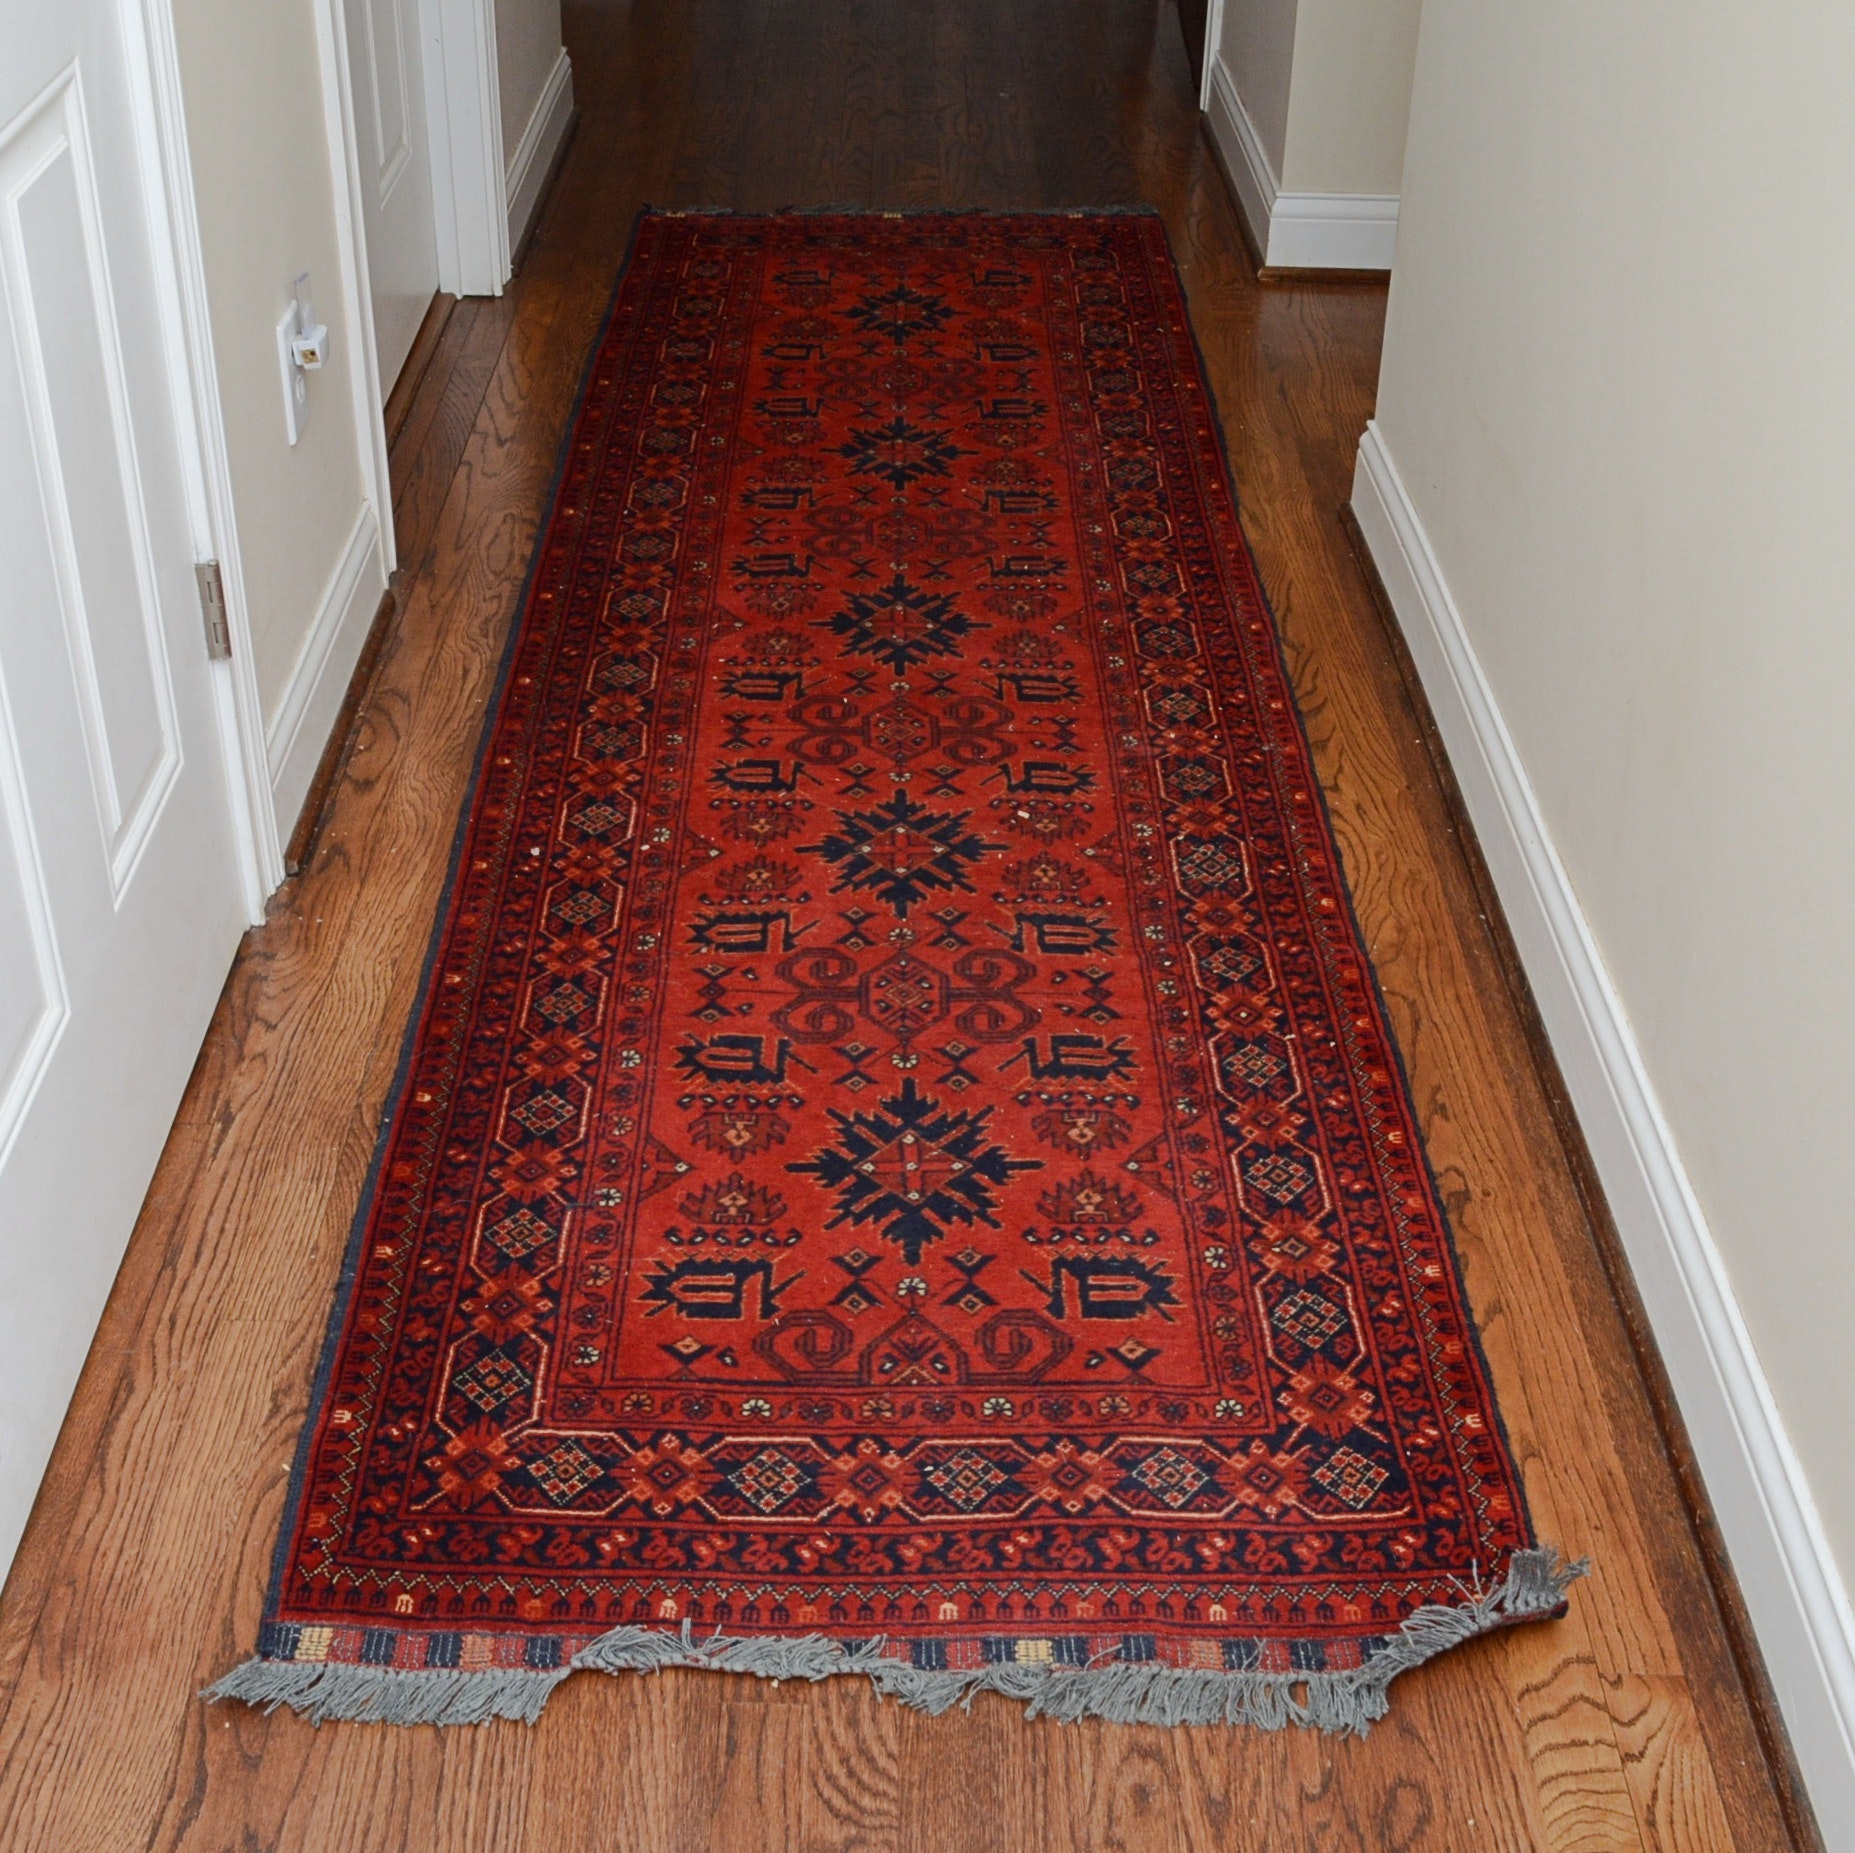 Hand-Knotted Afghani Turkish Carpet Runner